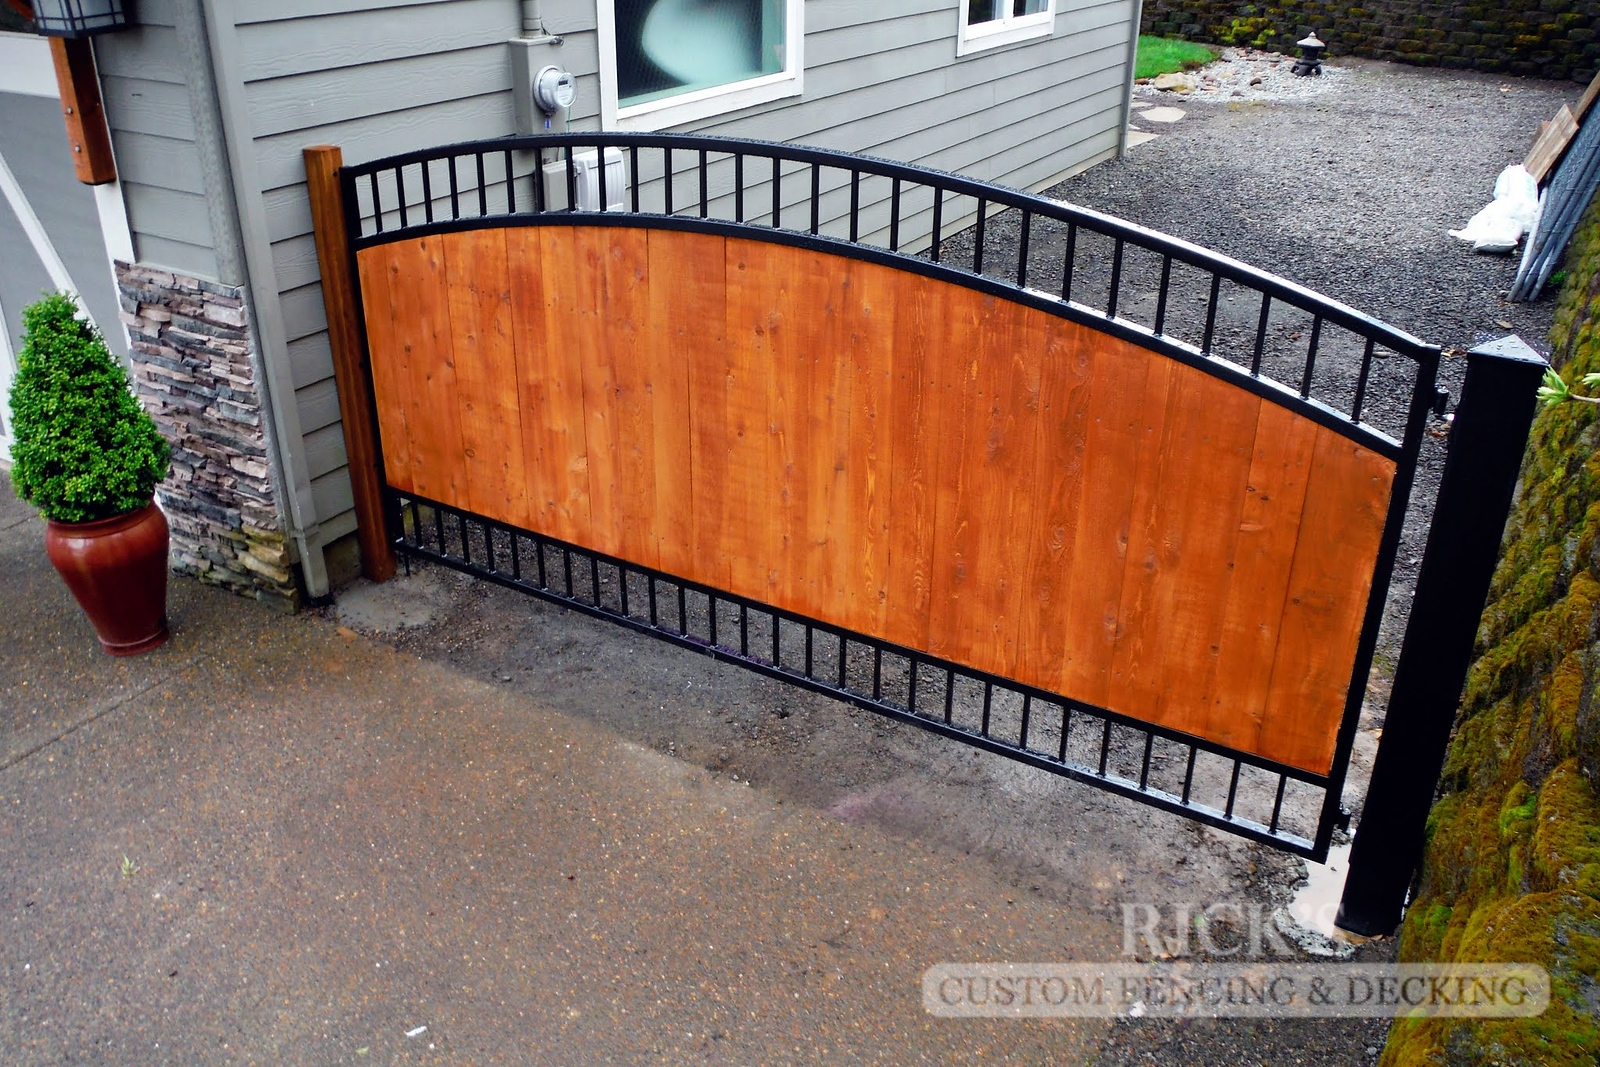 6231 - Ornamental Gate with Cedar Paneling